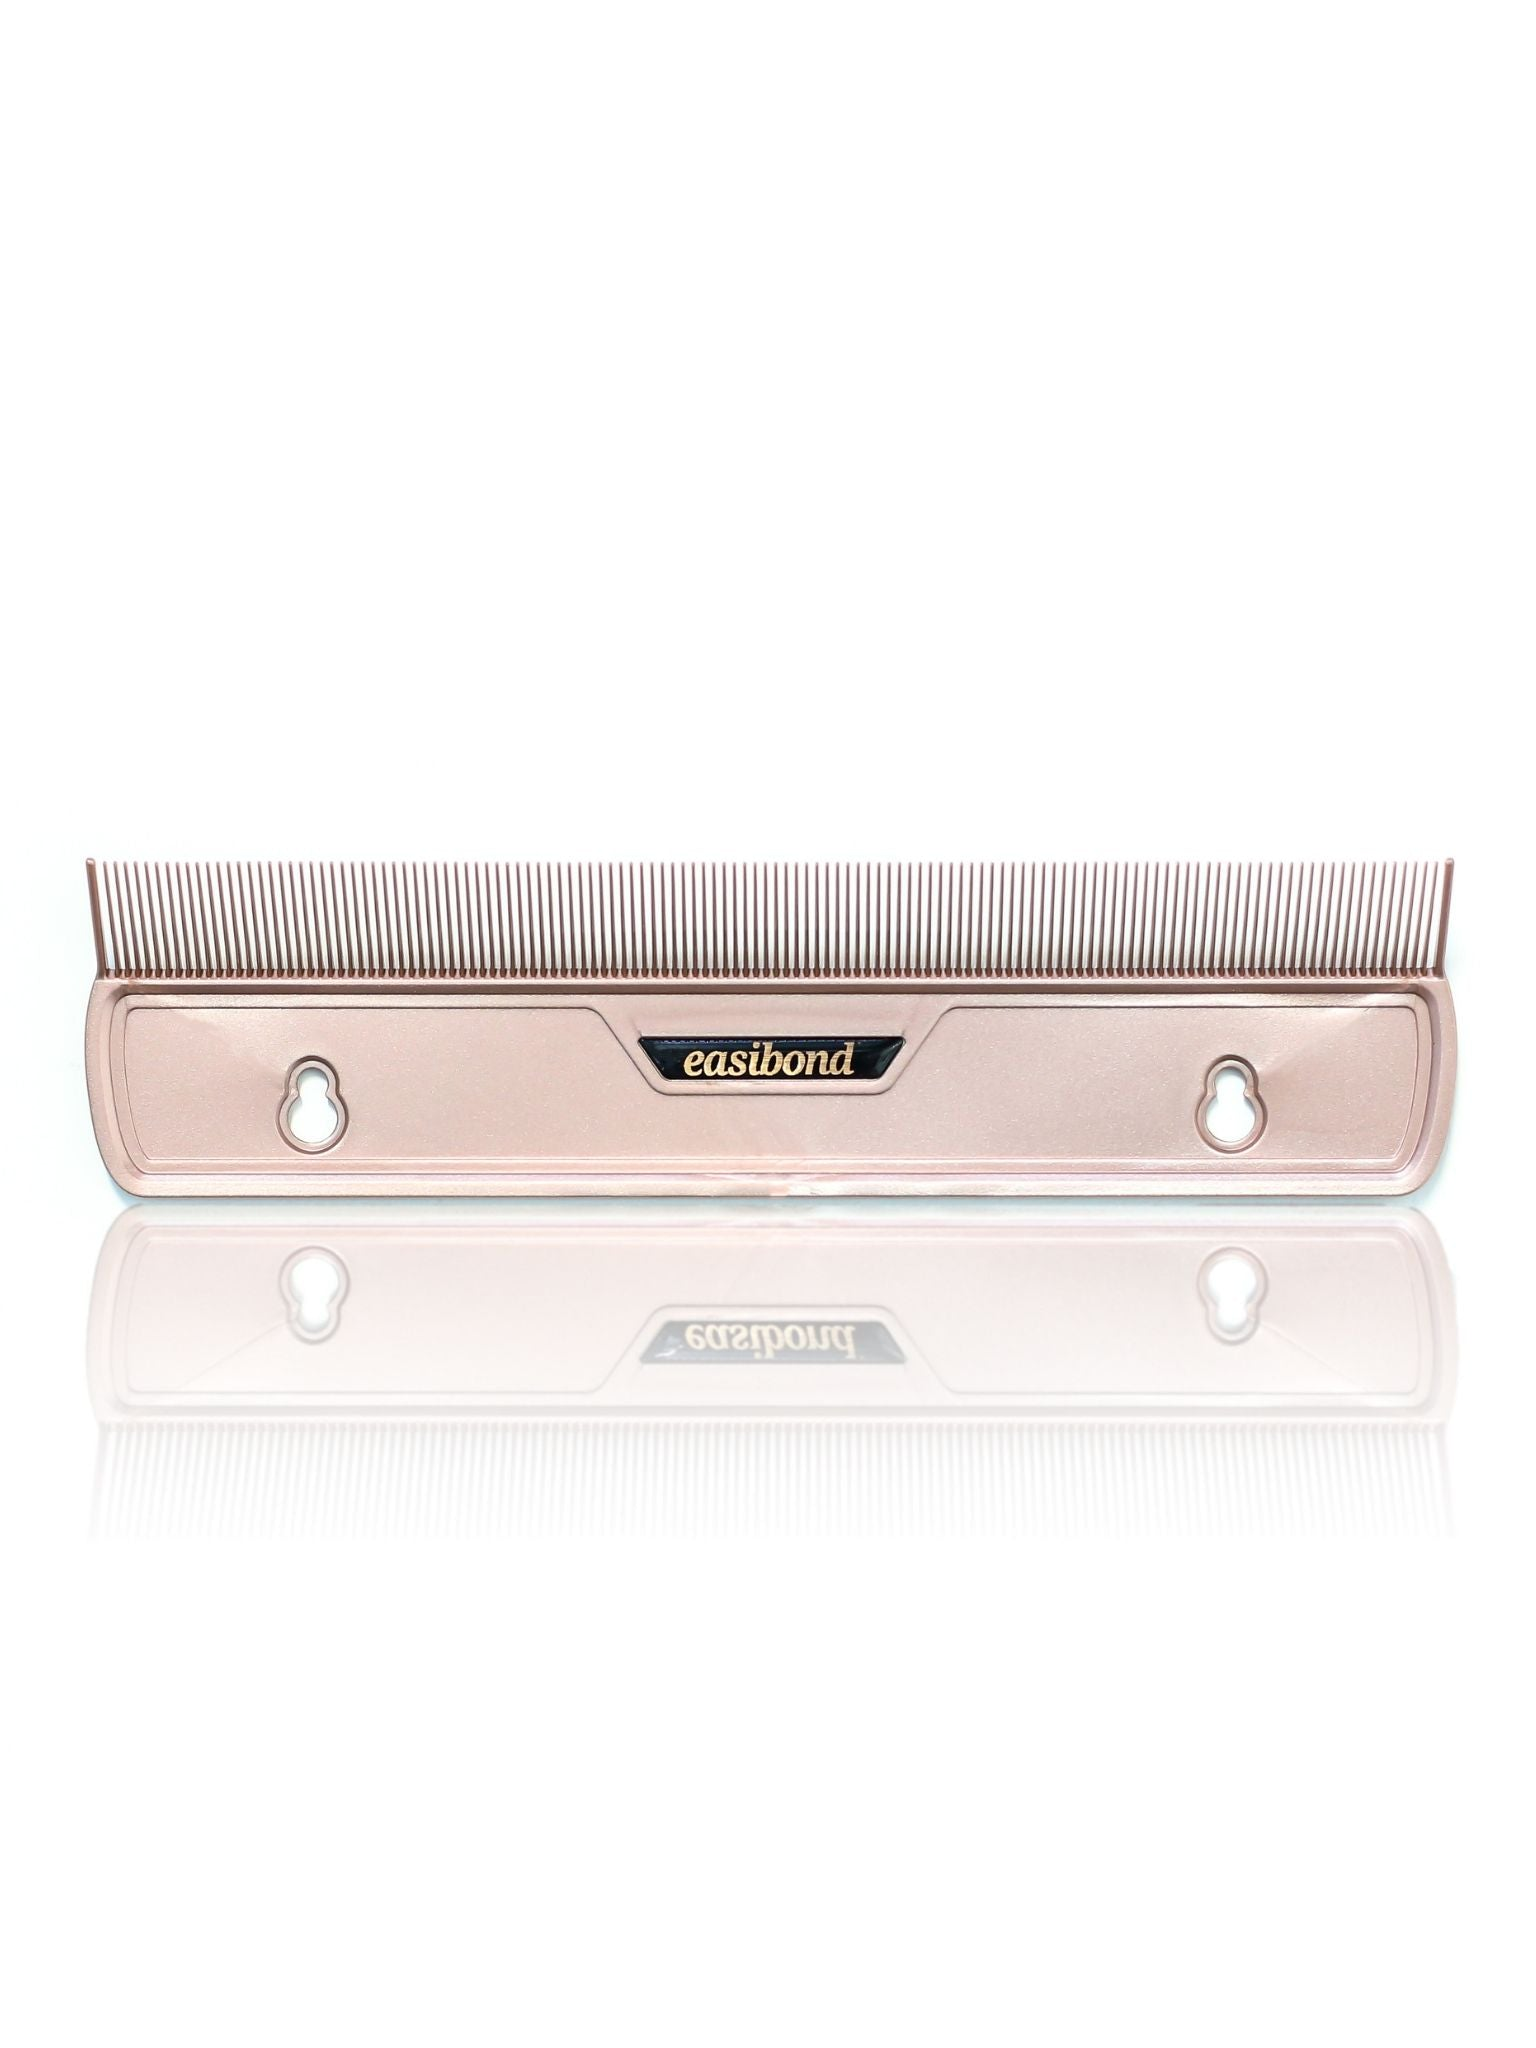 EasiBond® Hair Extensions Holder - Rose Gold